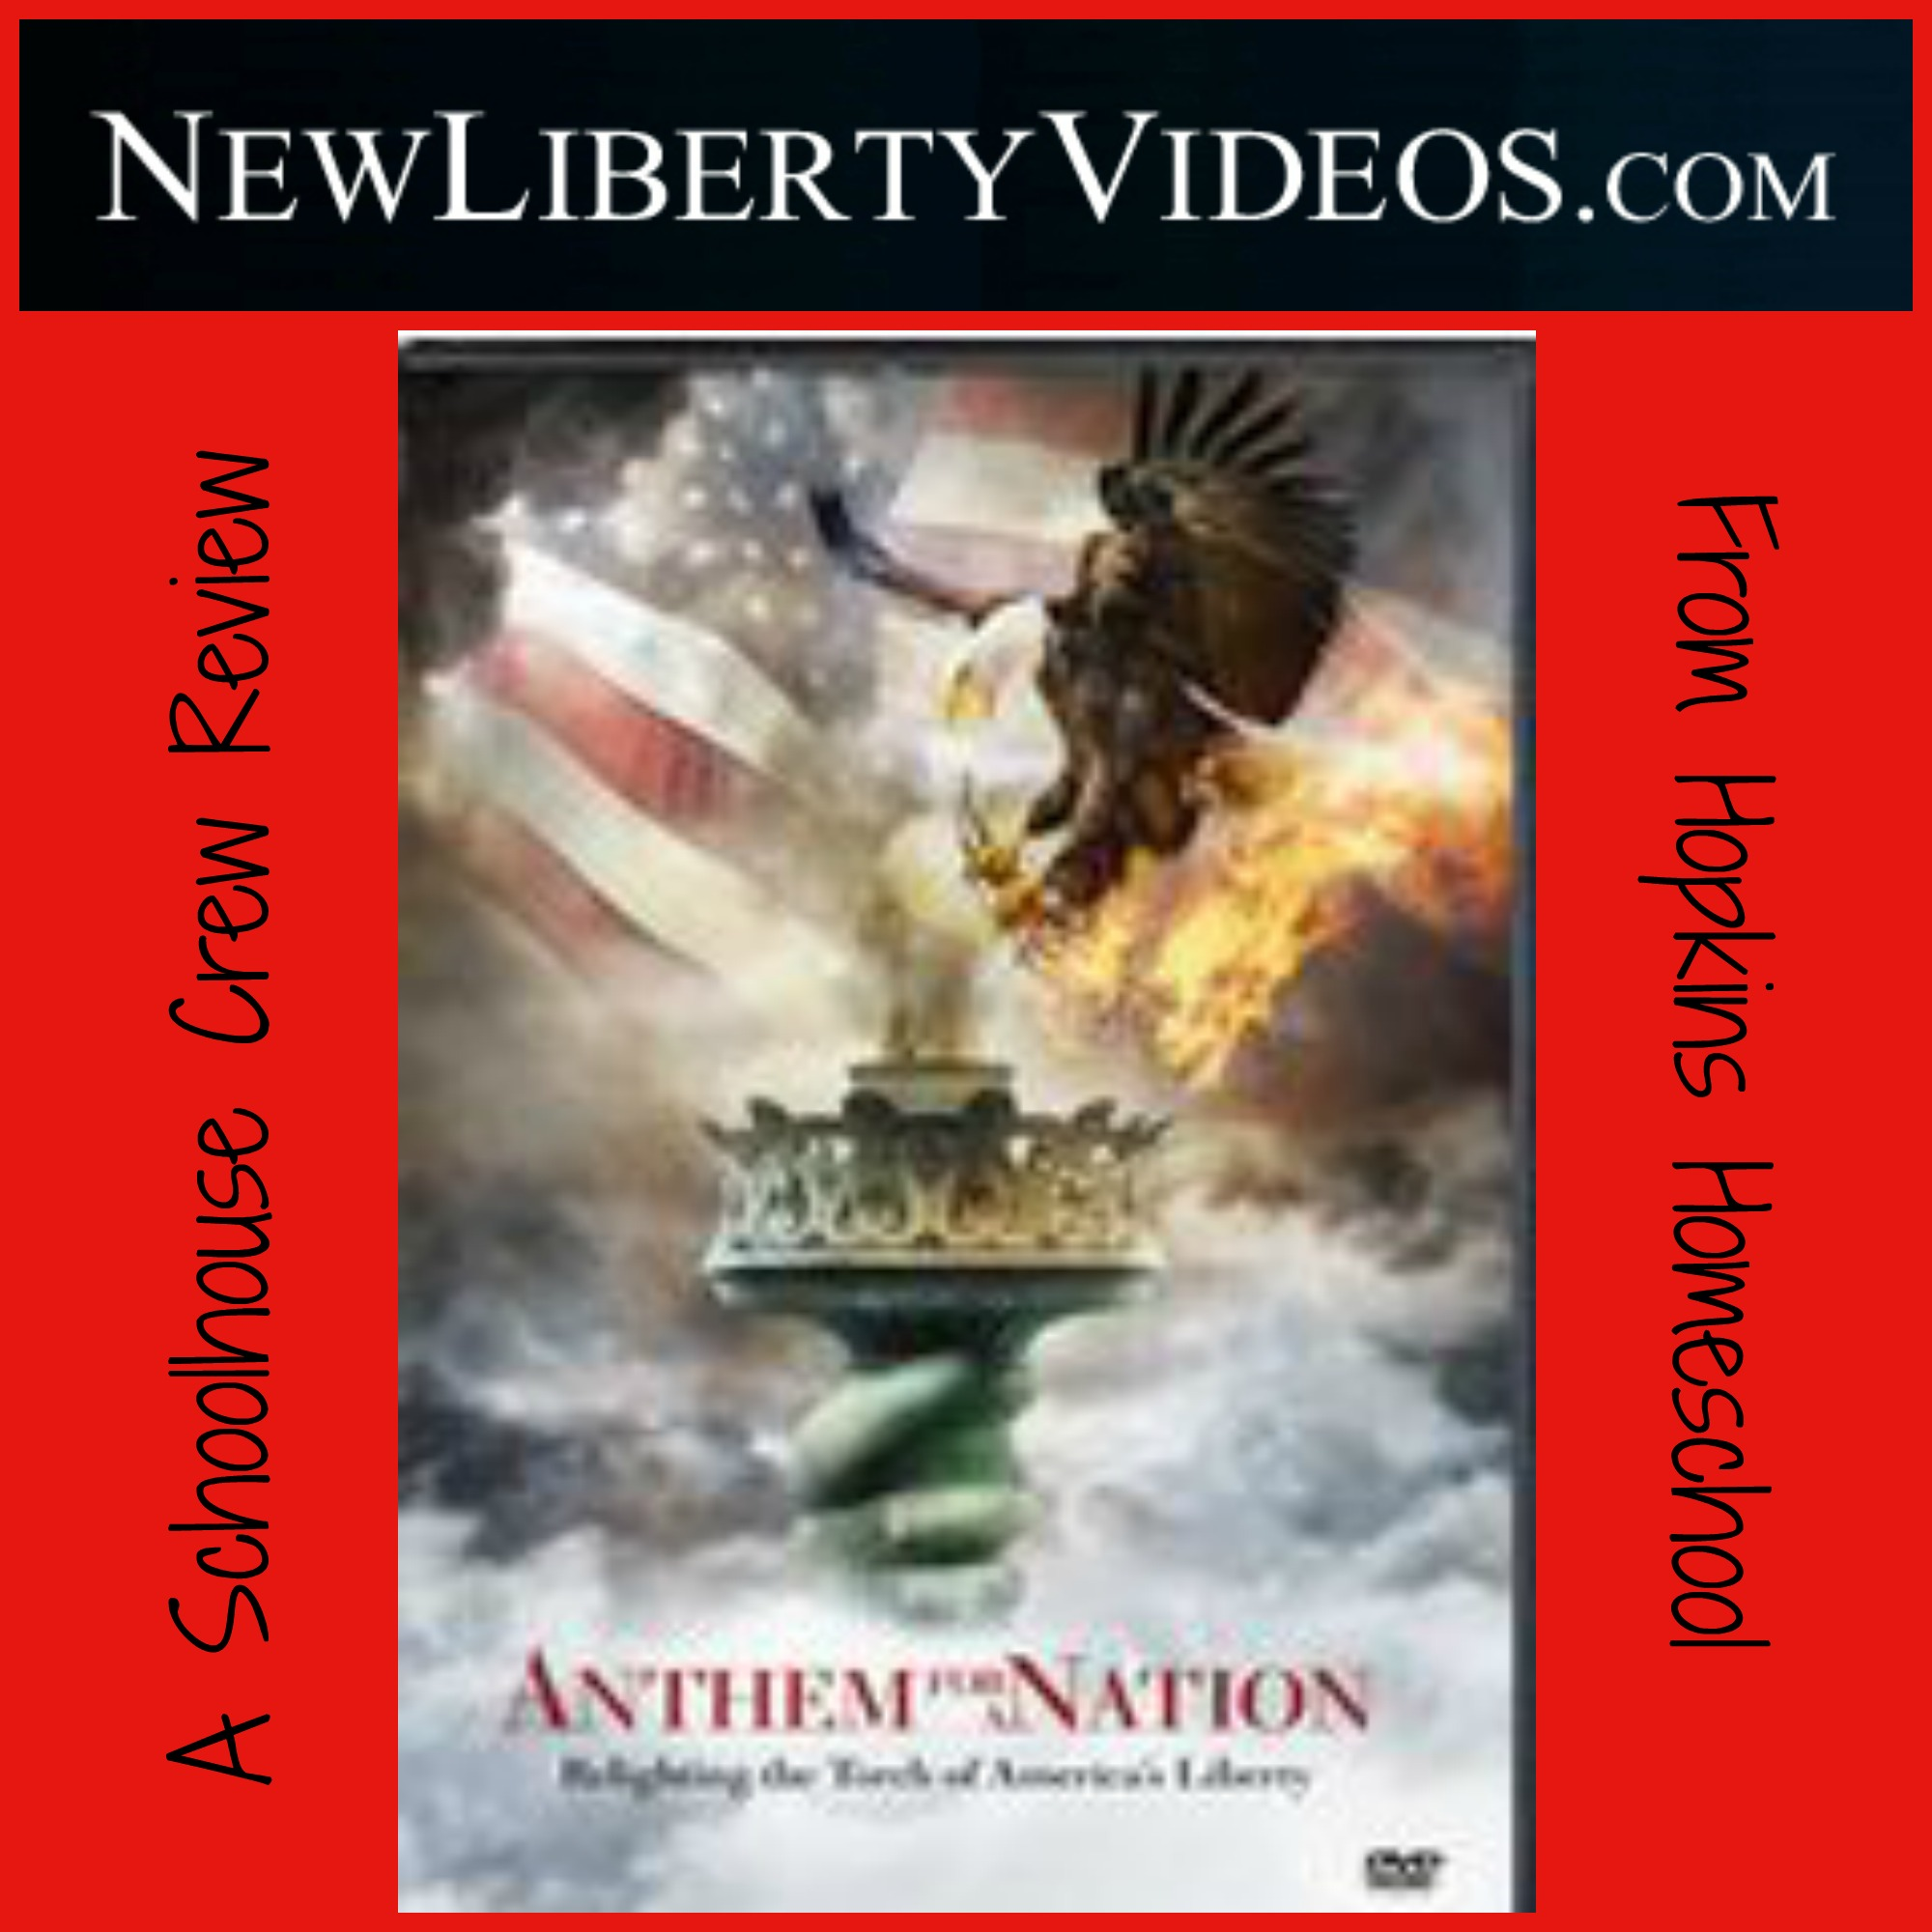 Anthem for a Nation ~ A Schoolhouse Crew Review